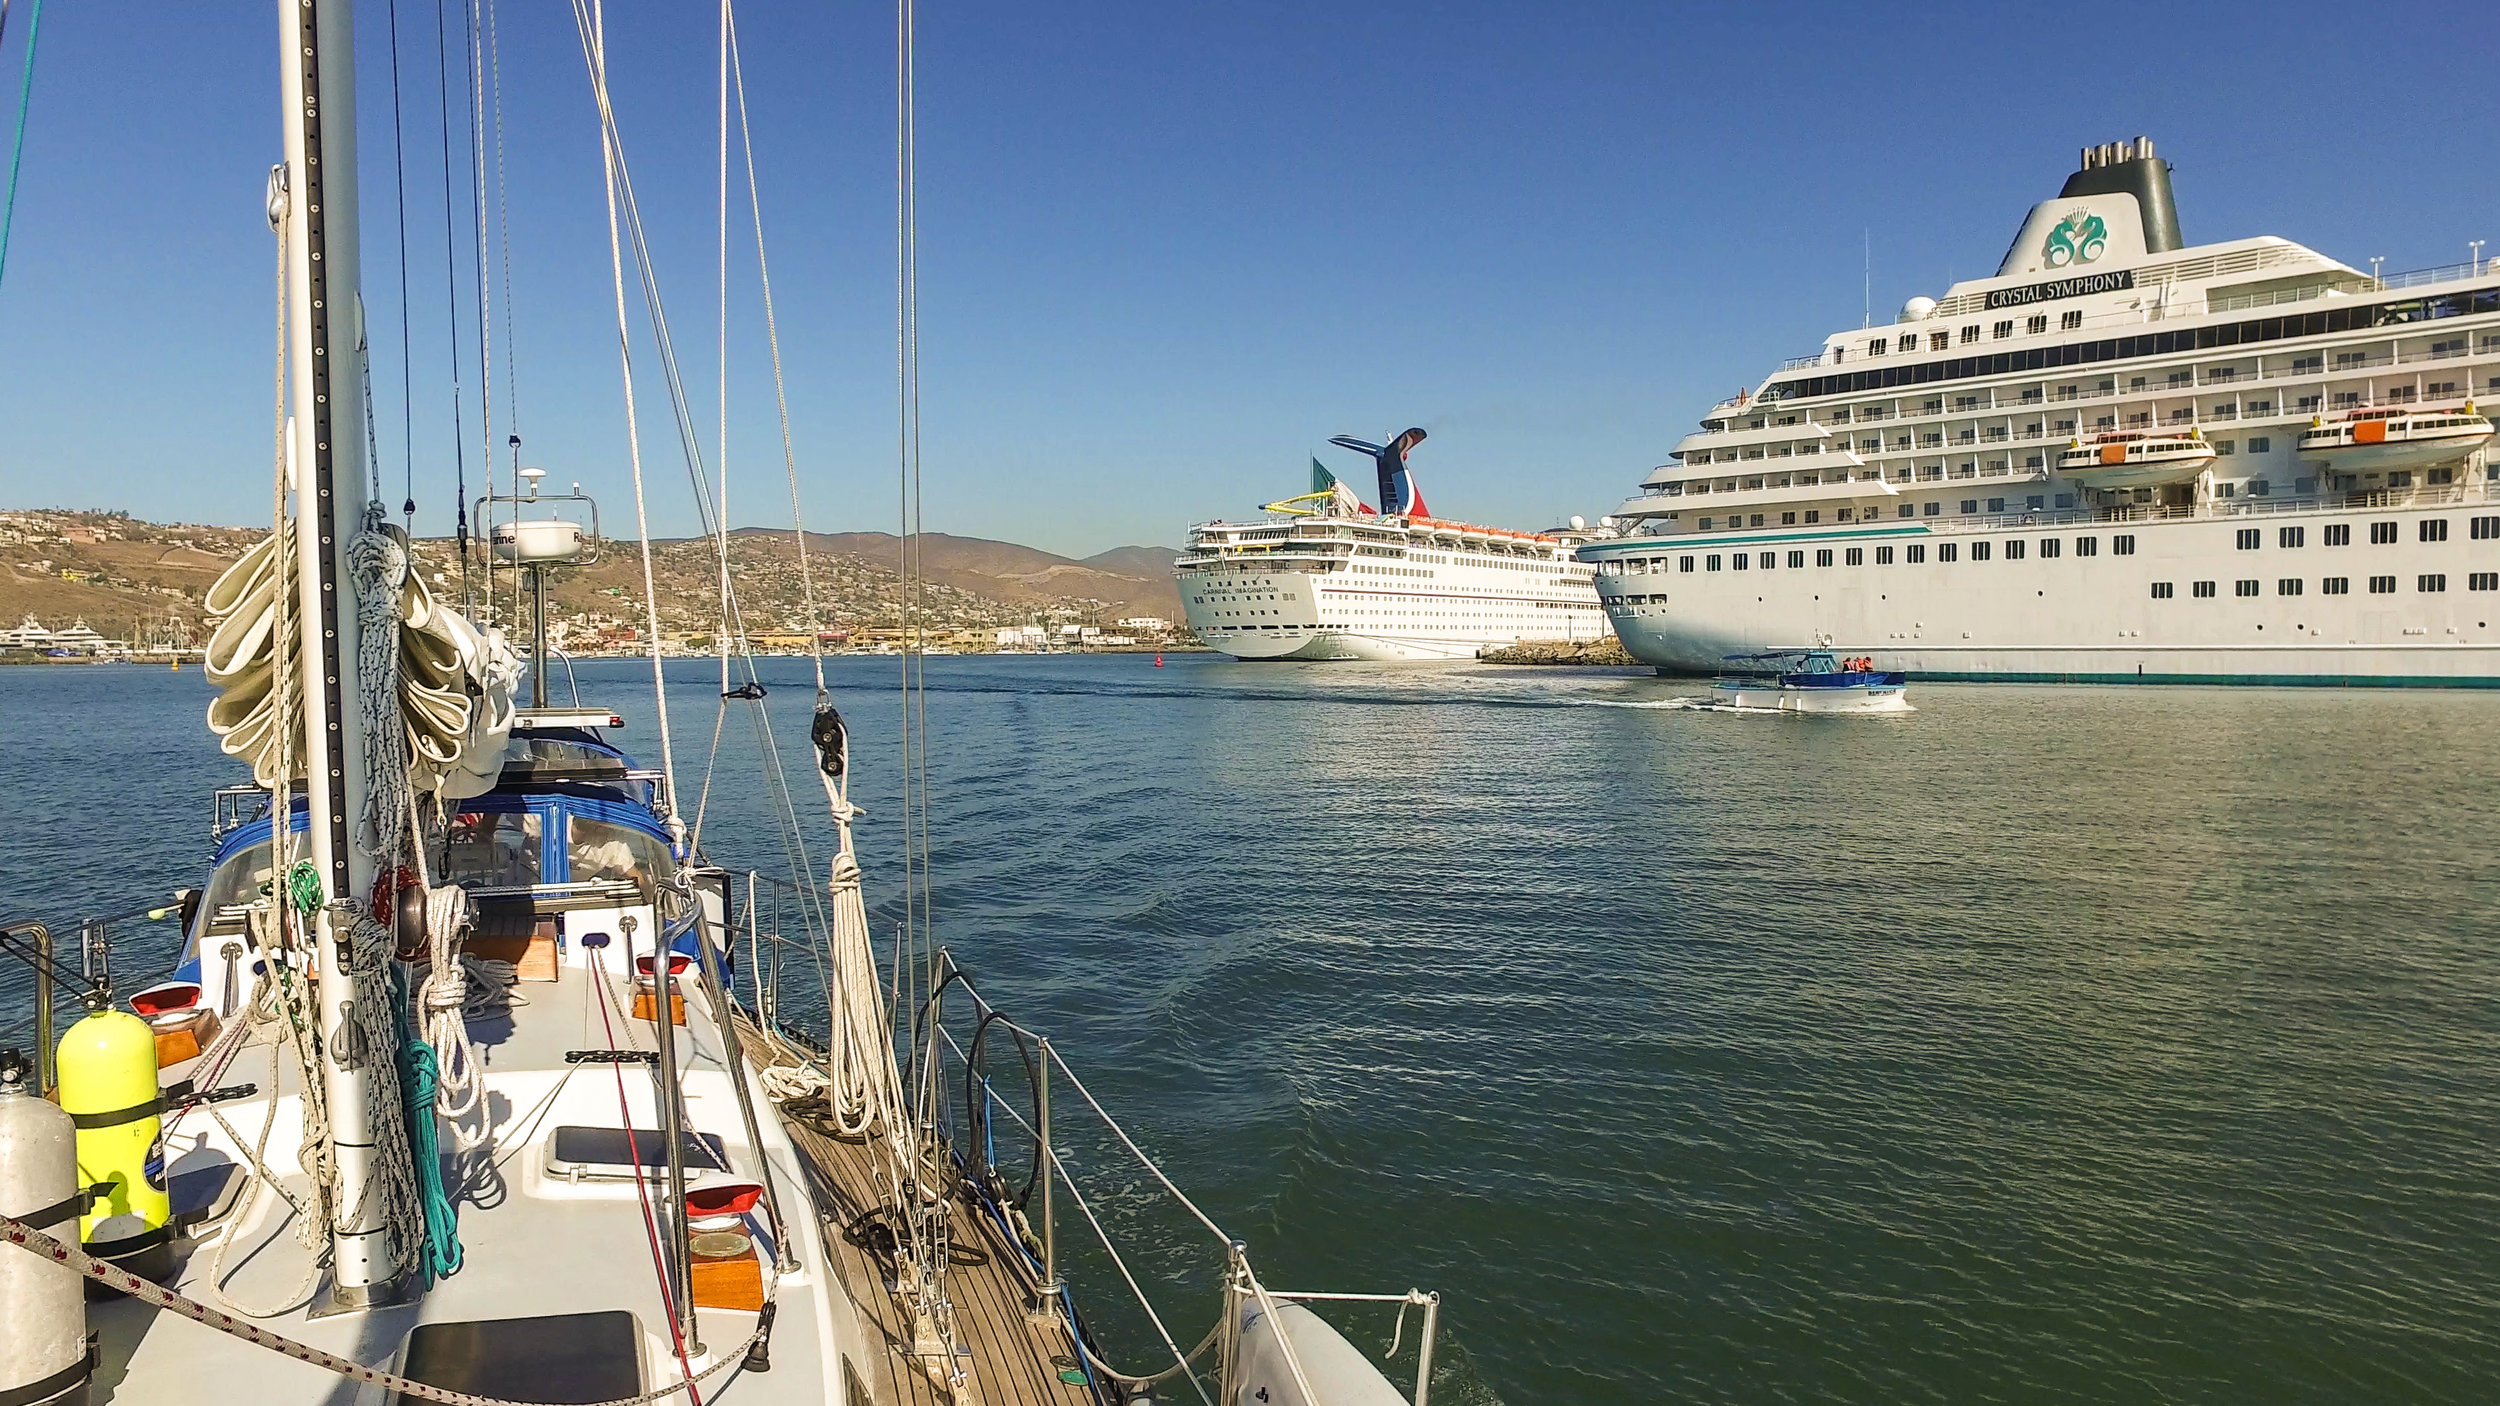 Waving goodbye to Ensenada and the cruise ships.